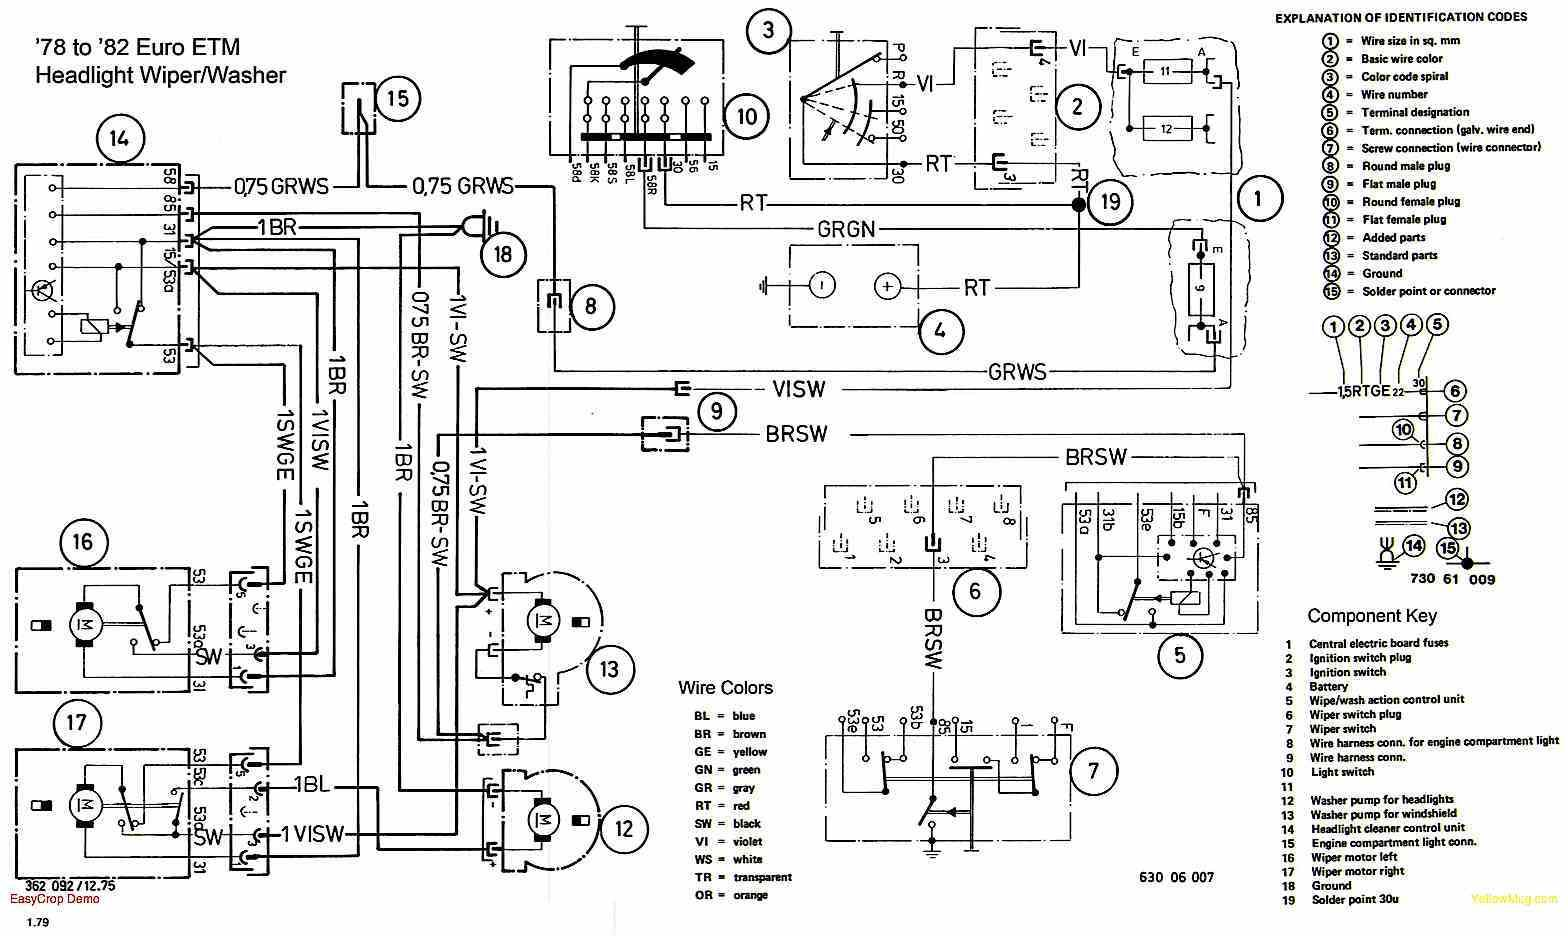 39 Clever Schematic Diagram Program Design Ideas